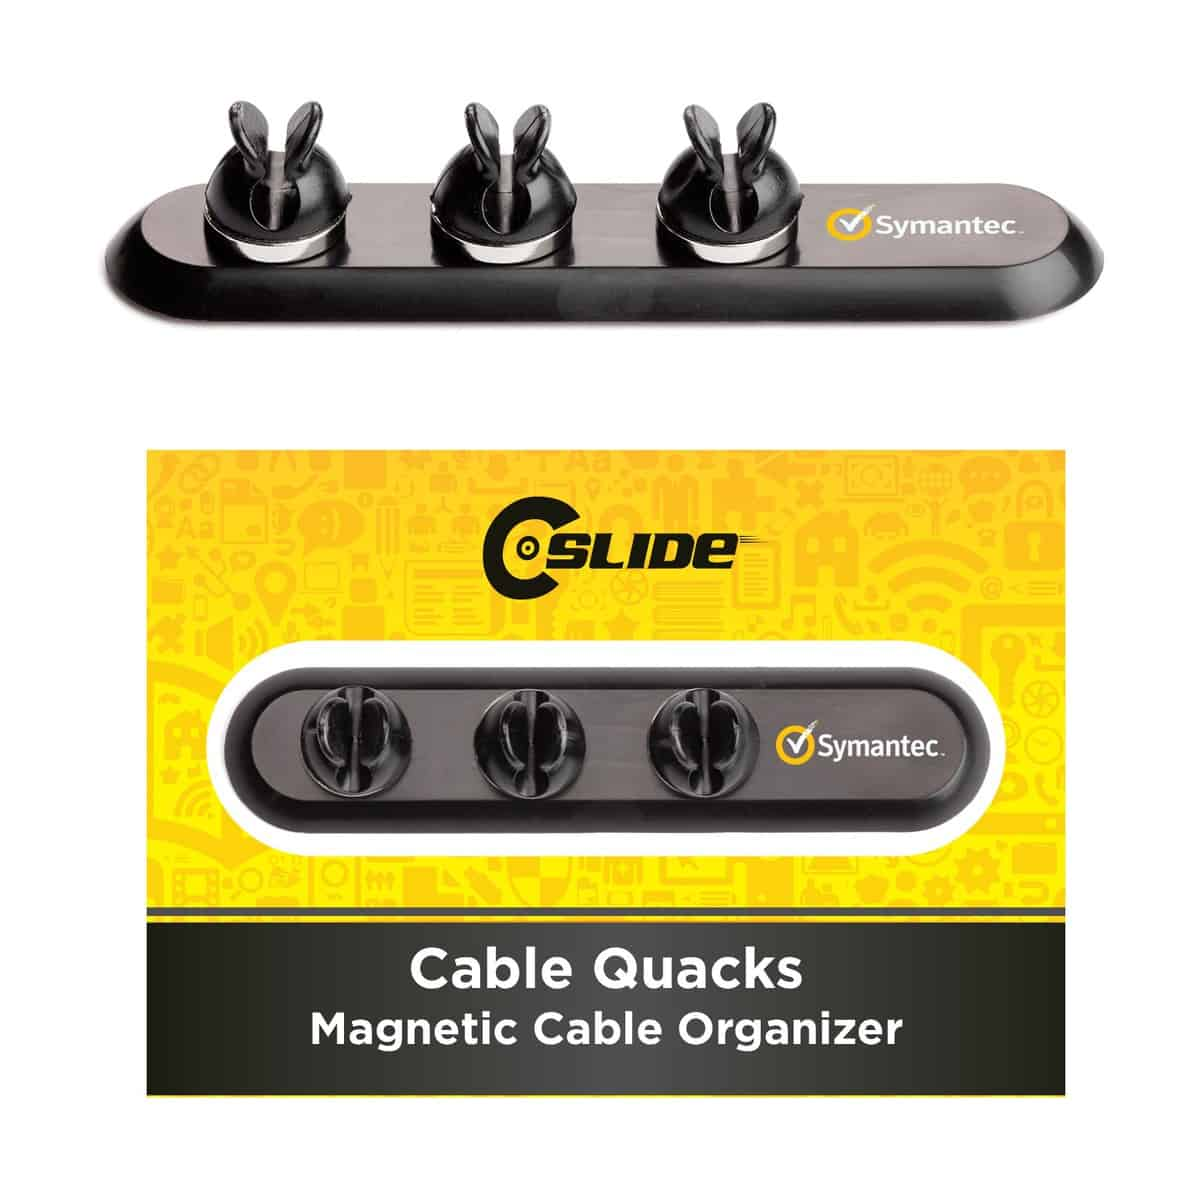 Cable Quacks + Standard Package